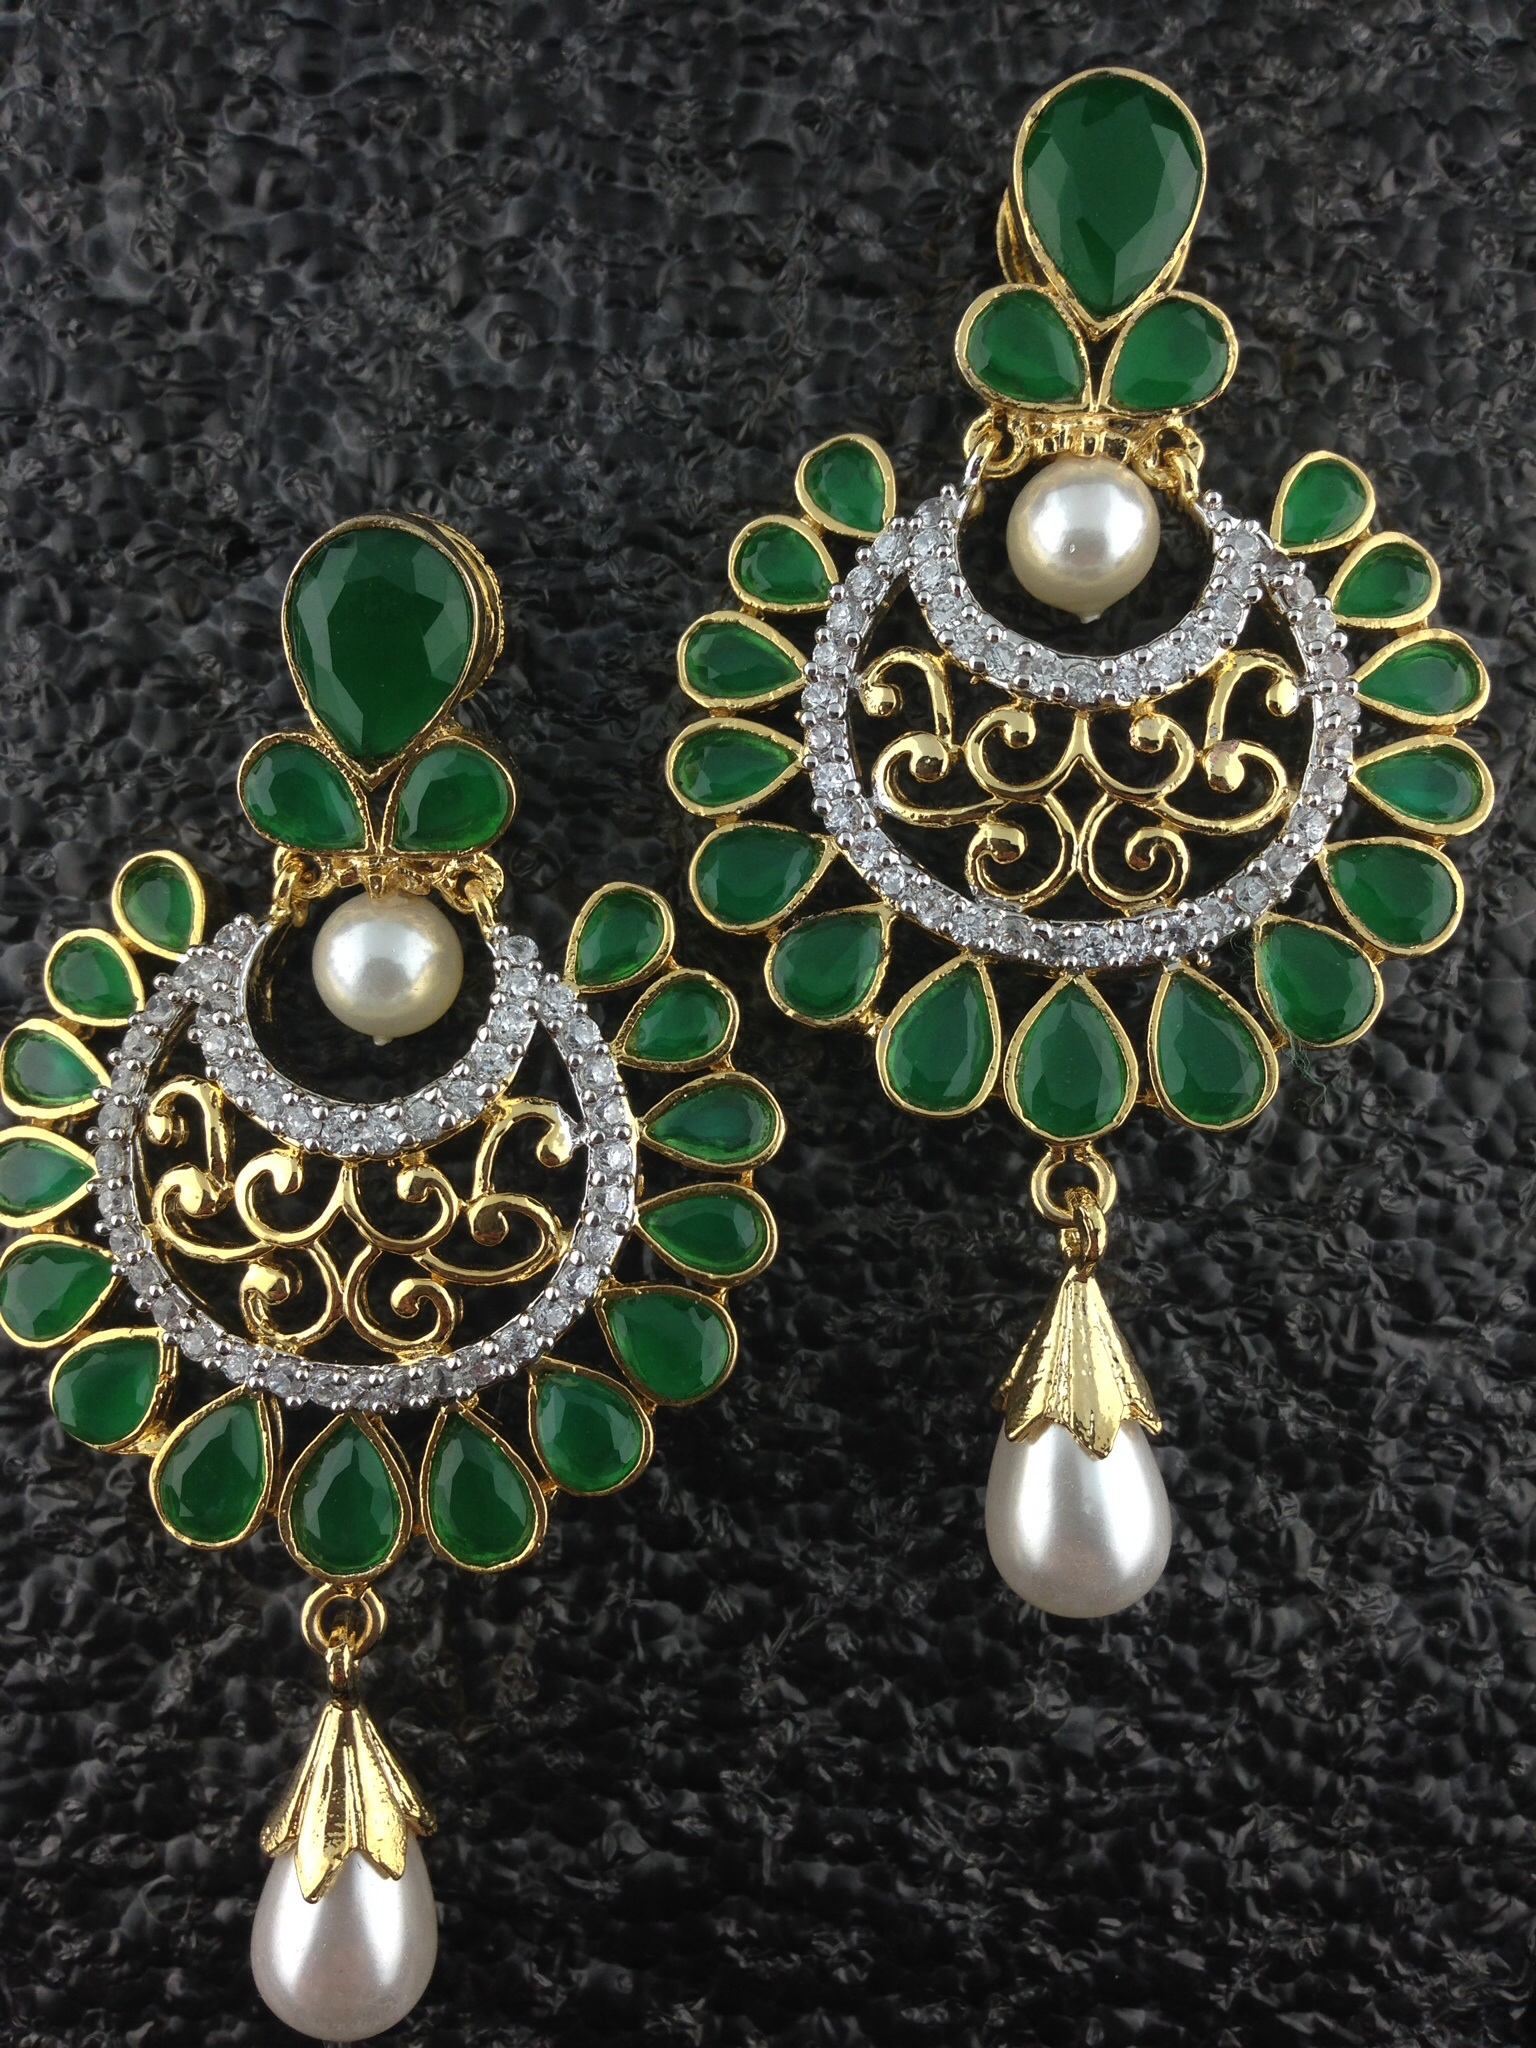 CZ Designer Circular Earrings With Emeralds and Pearls.